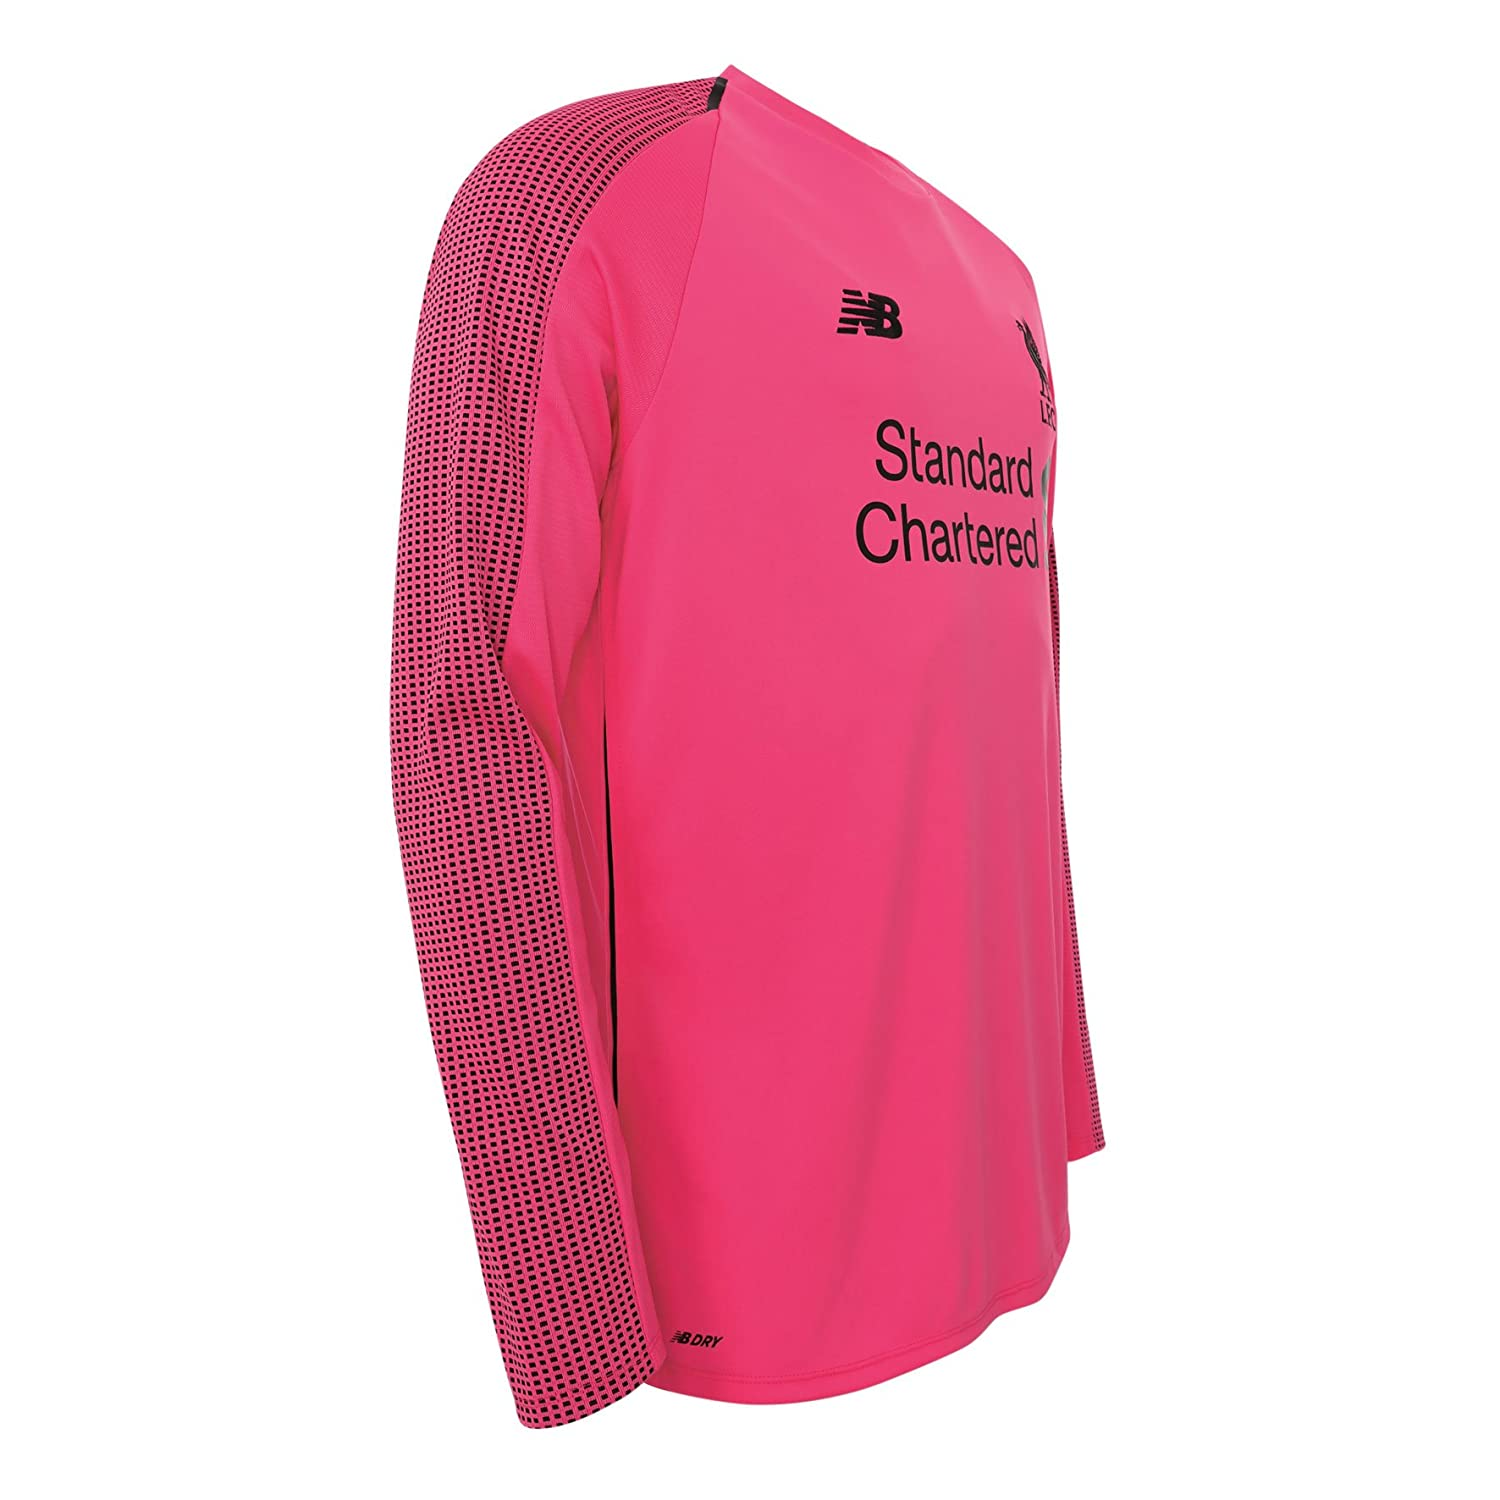 418db8f97 New Balace Liverpool FC Long Sleeve Pink Boys Football Goalkeeper Third  Shirt 18 19 LFC Official  Amazon.co.uk  Sports   Outdoors